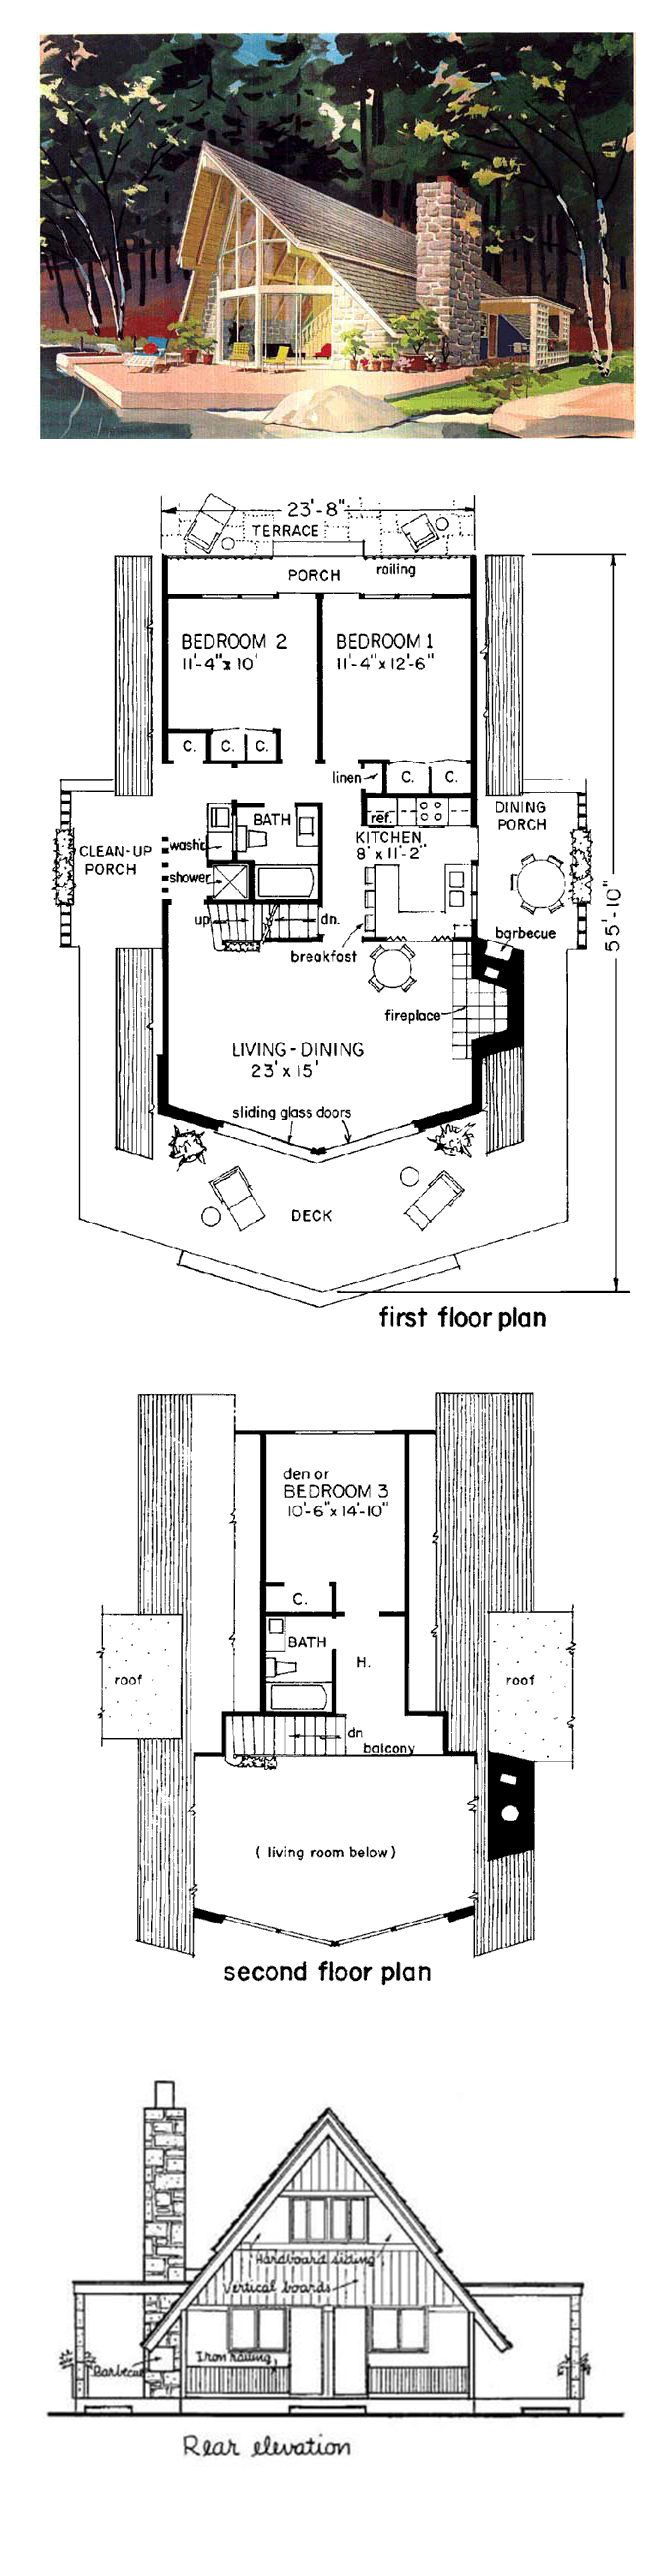 home plans floors a plan house your texas homes builder decorations floor centex draw layout lovely of beautiful for